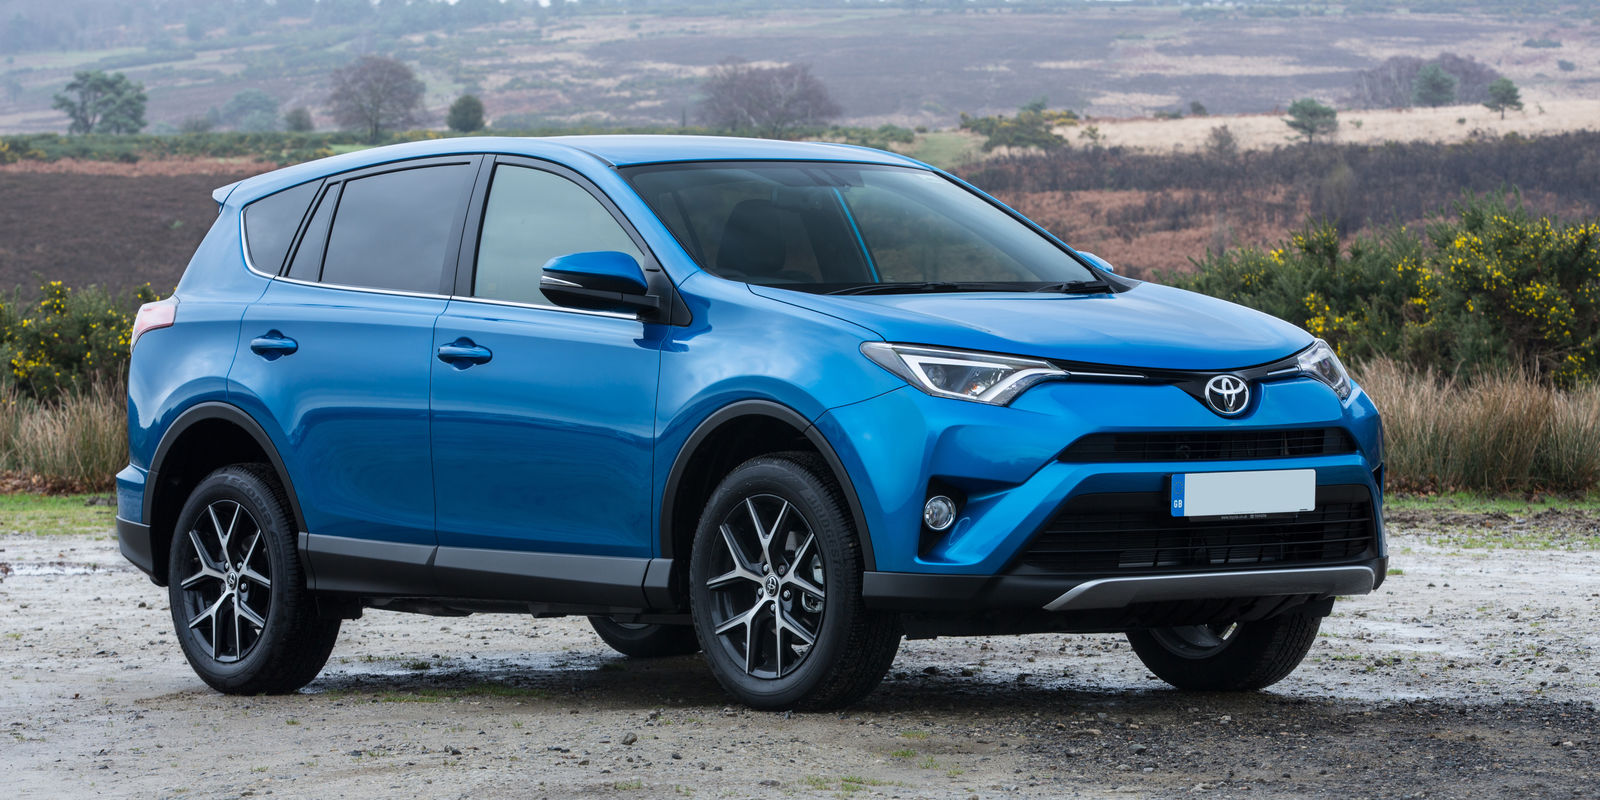 Toyota rav4 deals uk